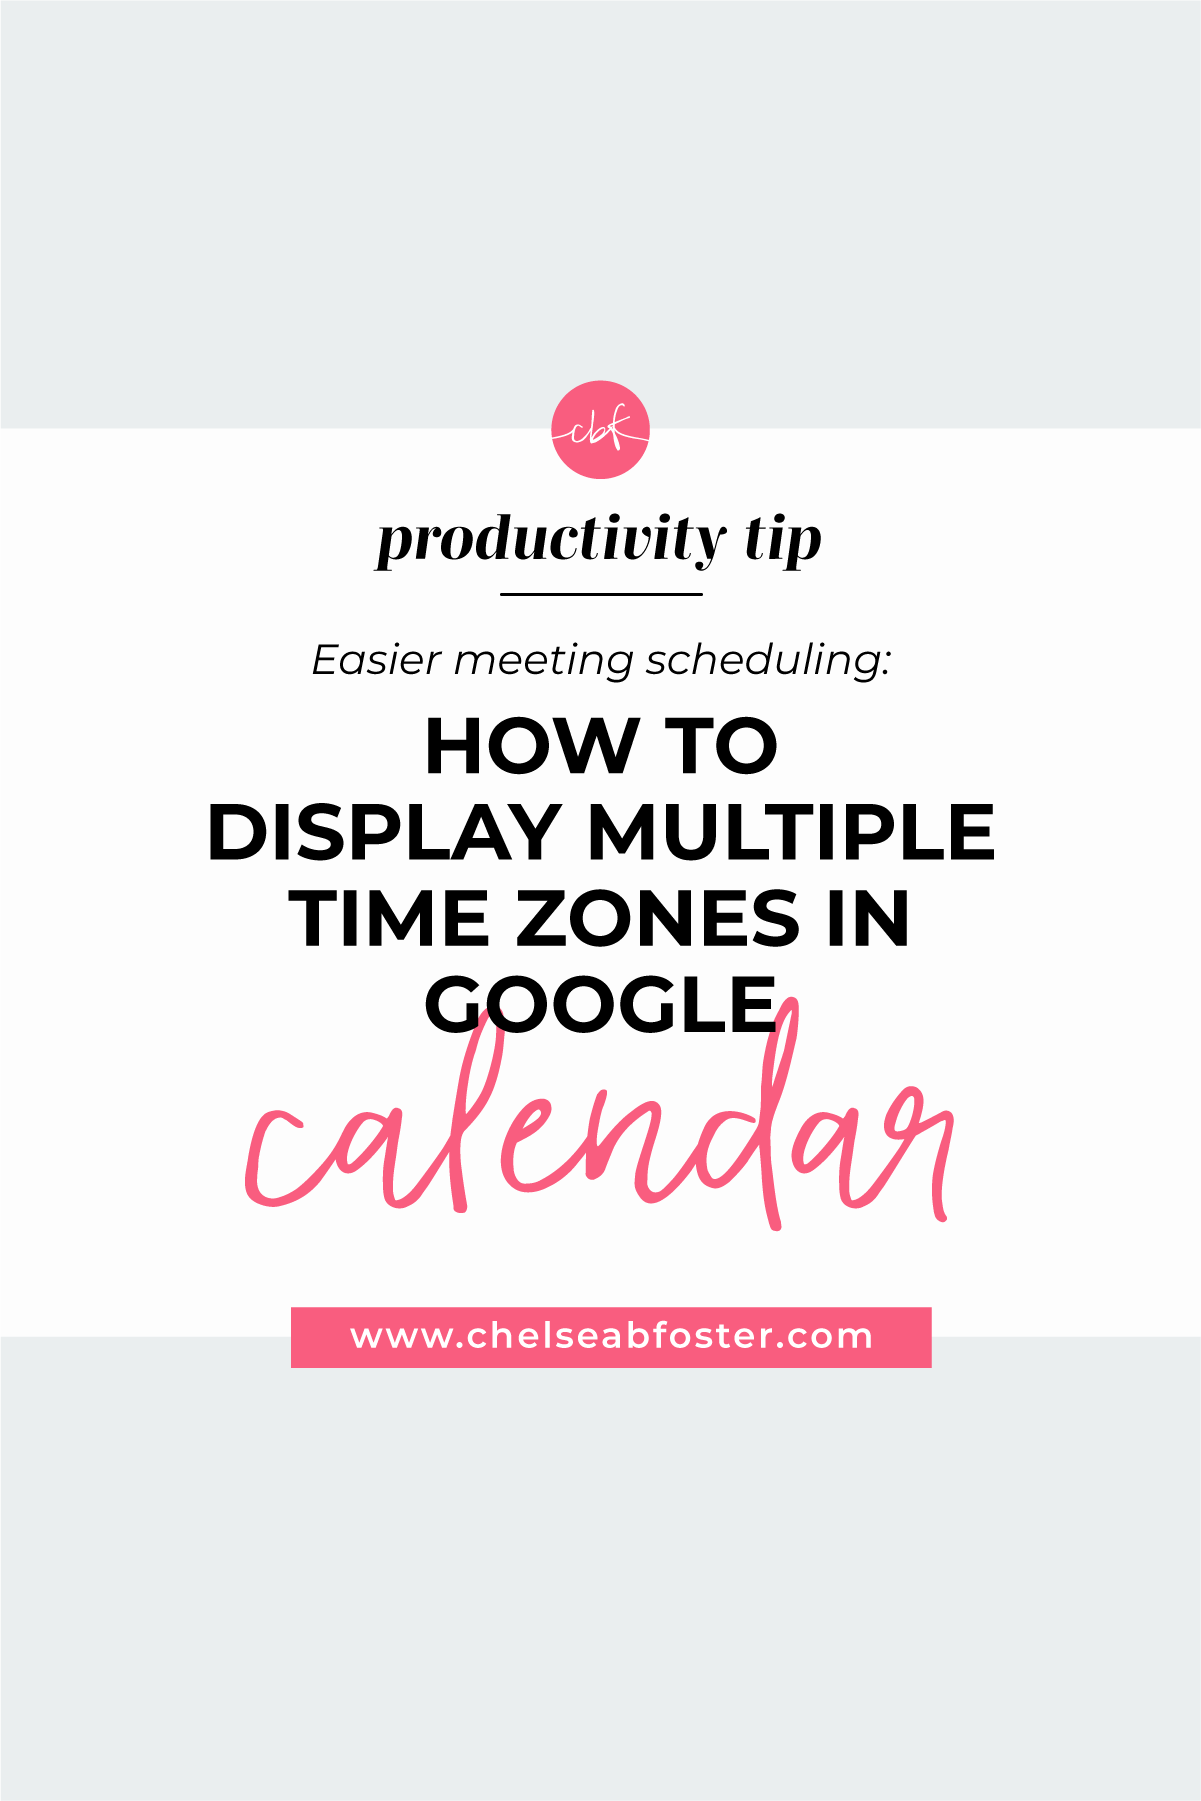 How to Display Two Time Zones in Google Calendar on www.chelseabfoster.com | Workflows, Productivity, & Organization for Entrepreneurs & Coaches  ||  BURNOUT-PROOF YOUR BUSINESS | WORKFLOW & PRODUCTIVITY SPECIALIST | SCHEDULING MEETINGS IN GOOGLE CALENDAR | GOOGLE CALENDAR FOR CREATIVES | BEST FEATURES IN GOOGLE CALENDAR | GO-TO SYSTEMS FOR ENTREPRENEURS | BEST WORKFLOWS FOR ENTREPRENEURS